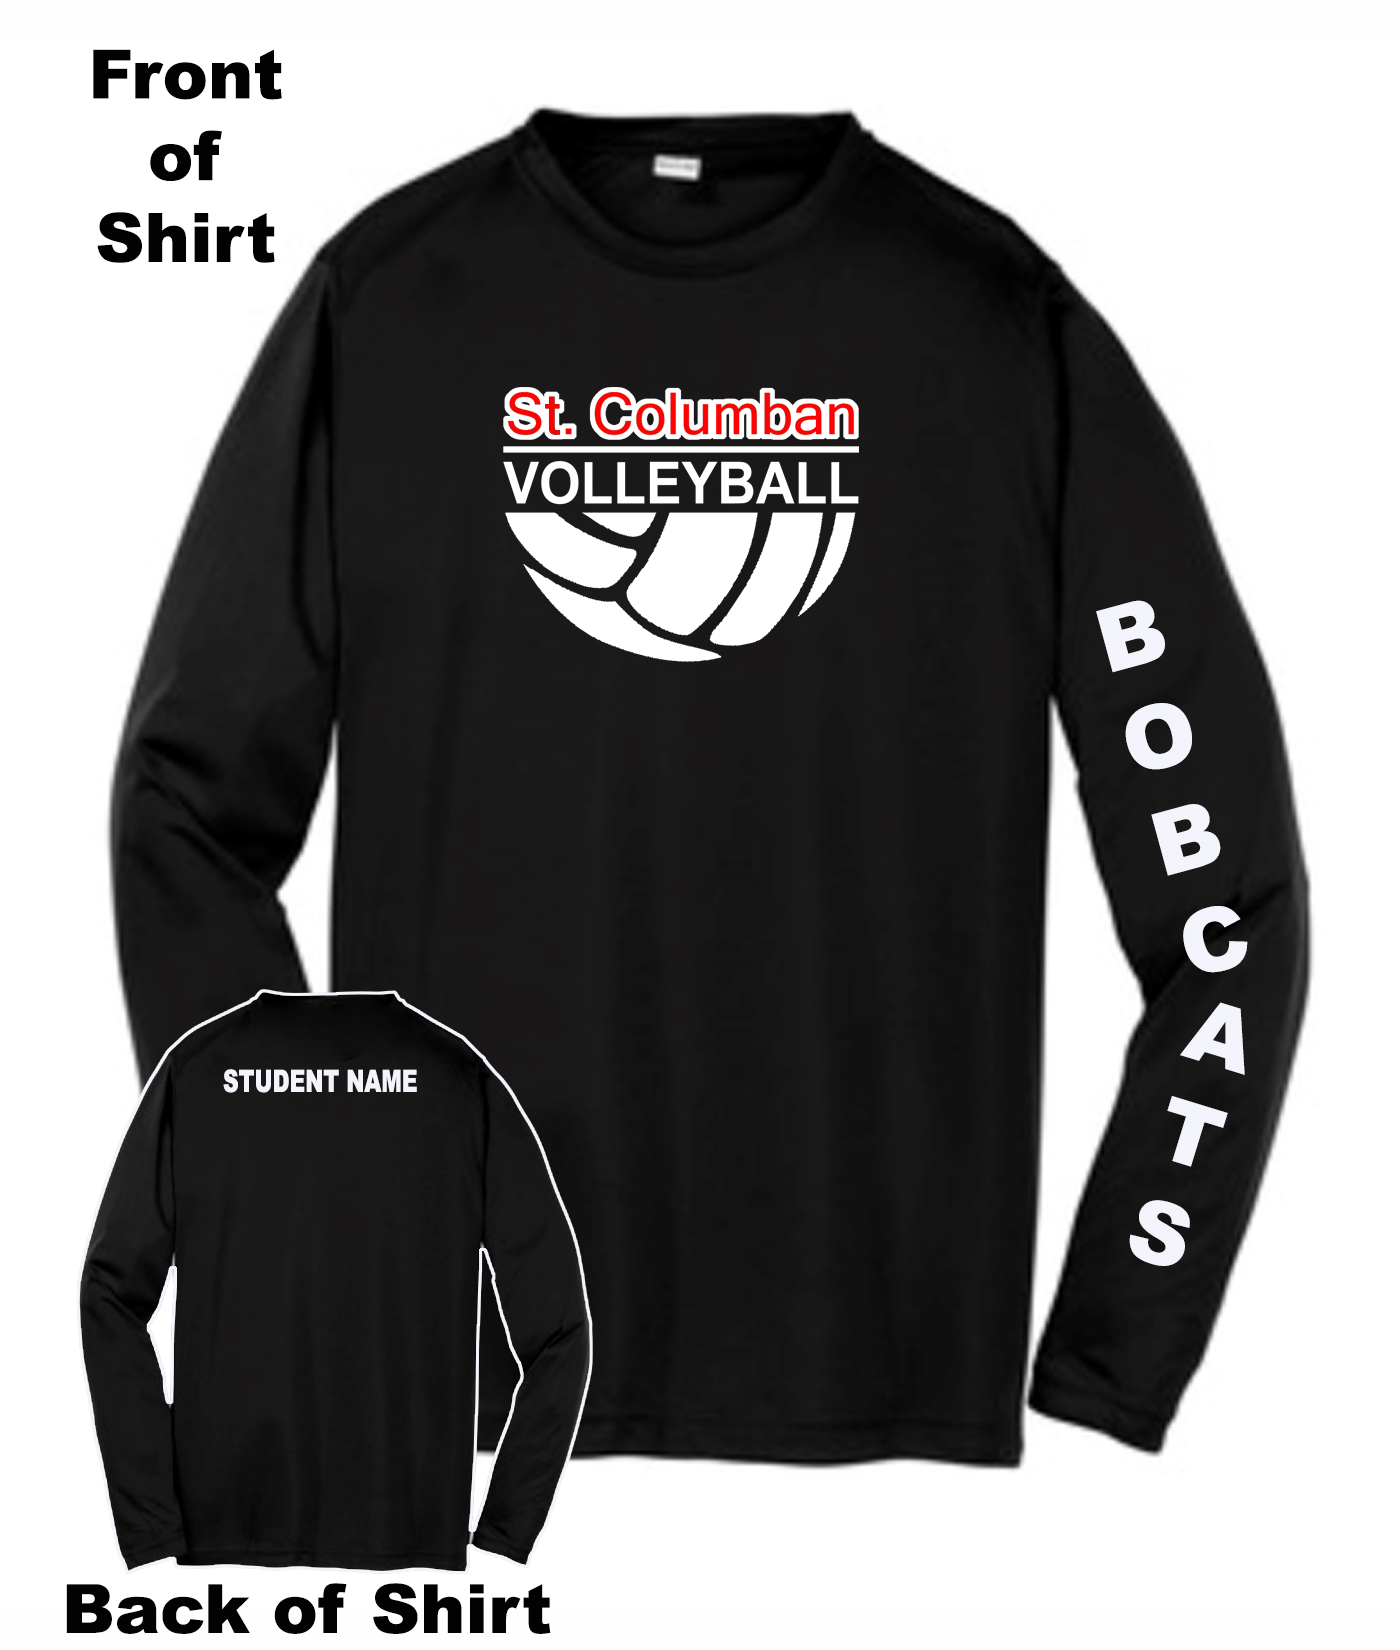 Bobcats Volleyball Warm Up Shirts